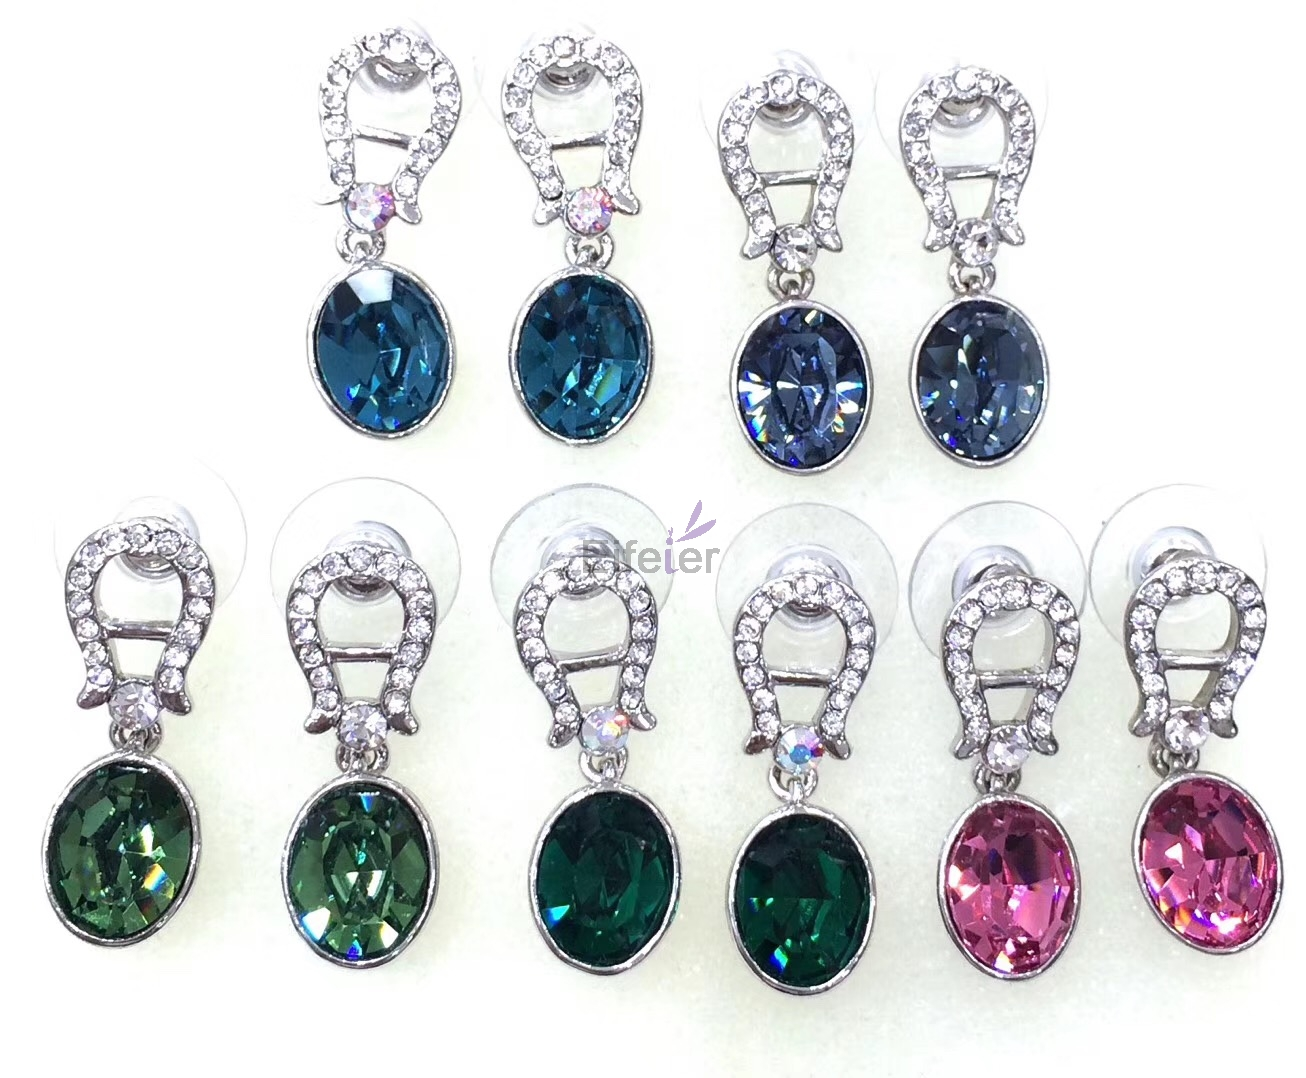 Swarovski Elements Earrings-M10007-174